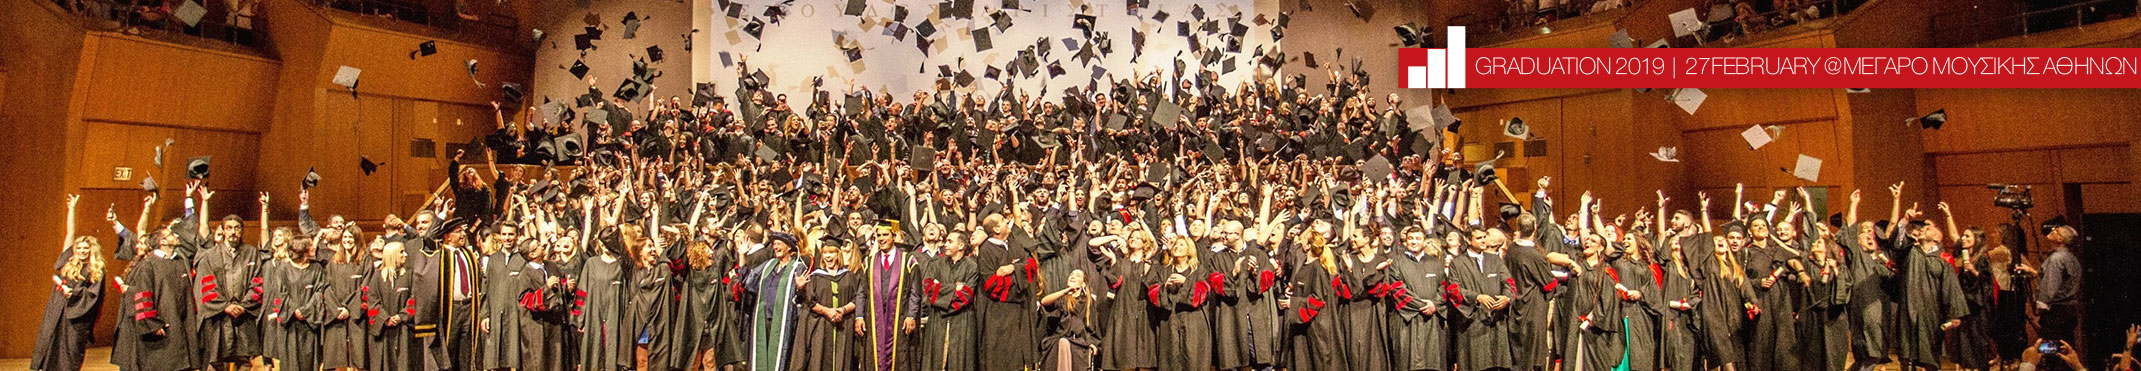 header graduationv209